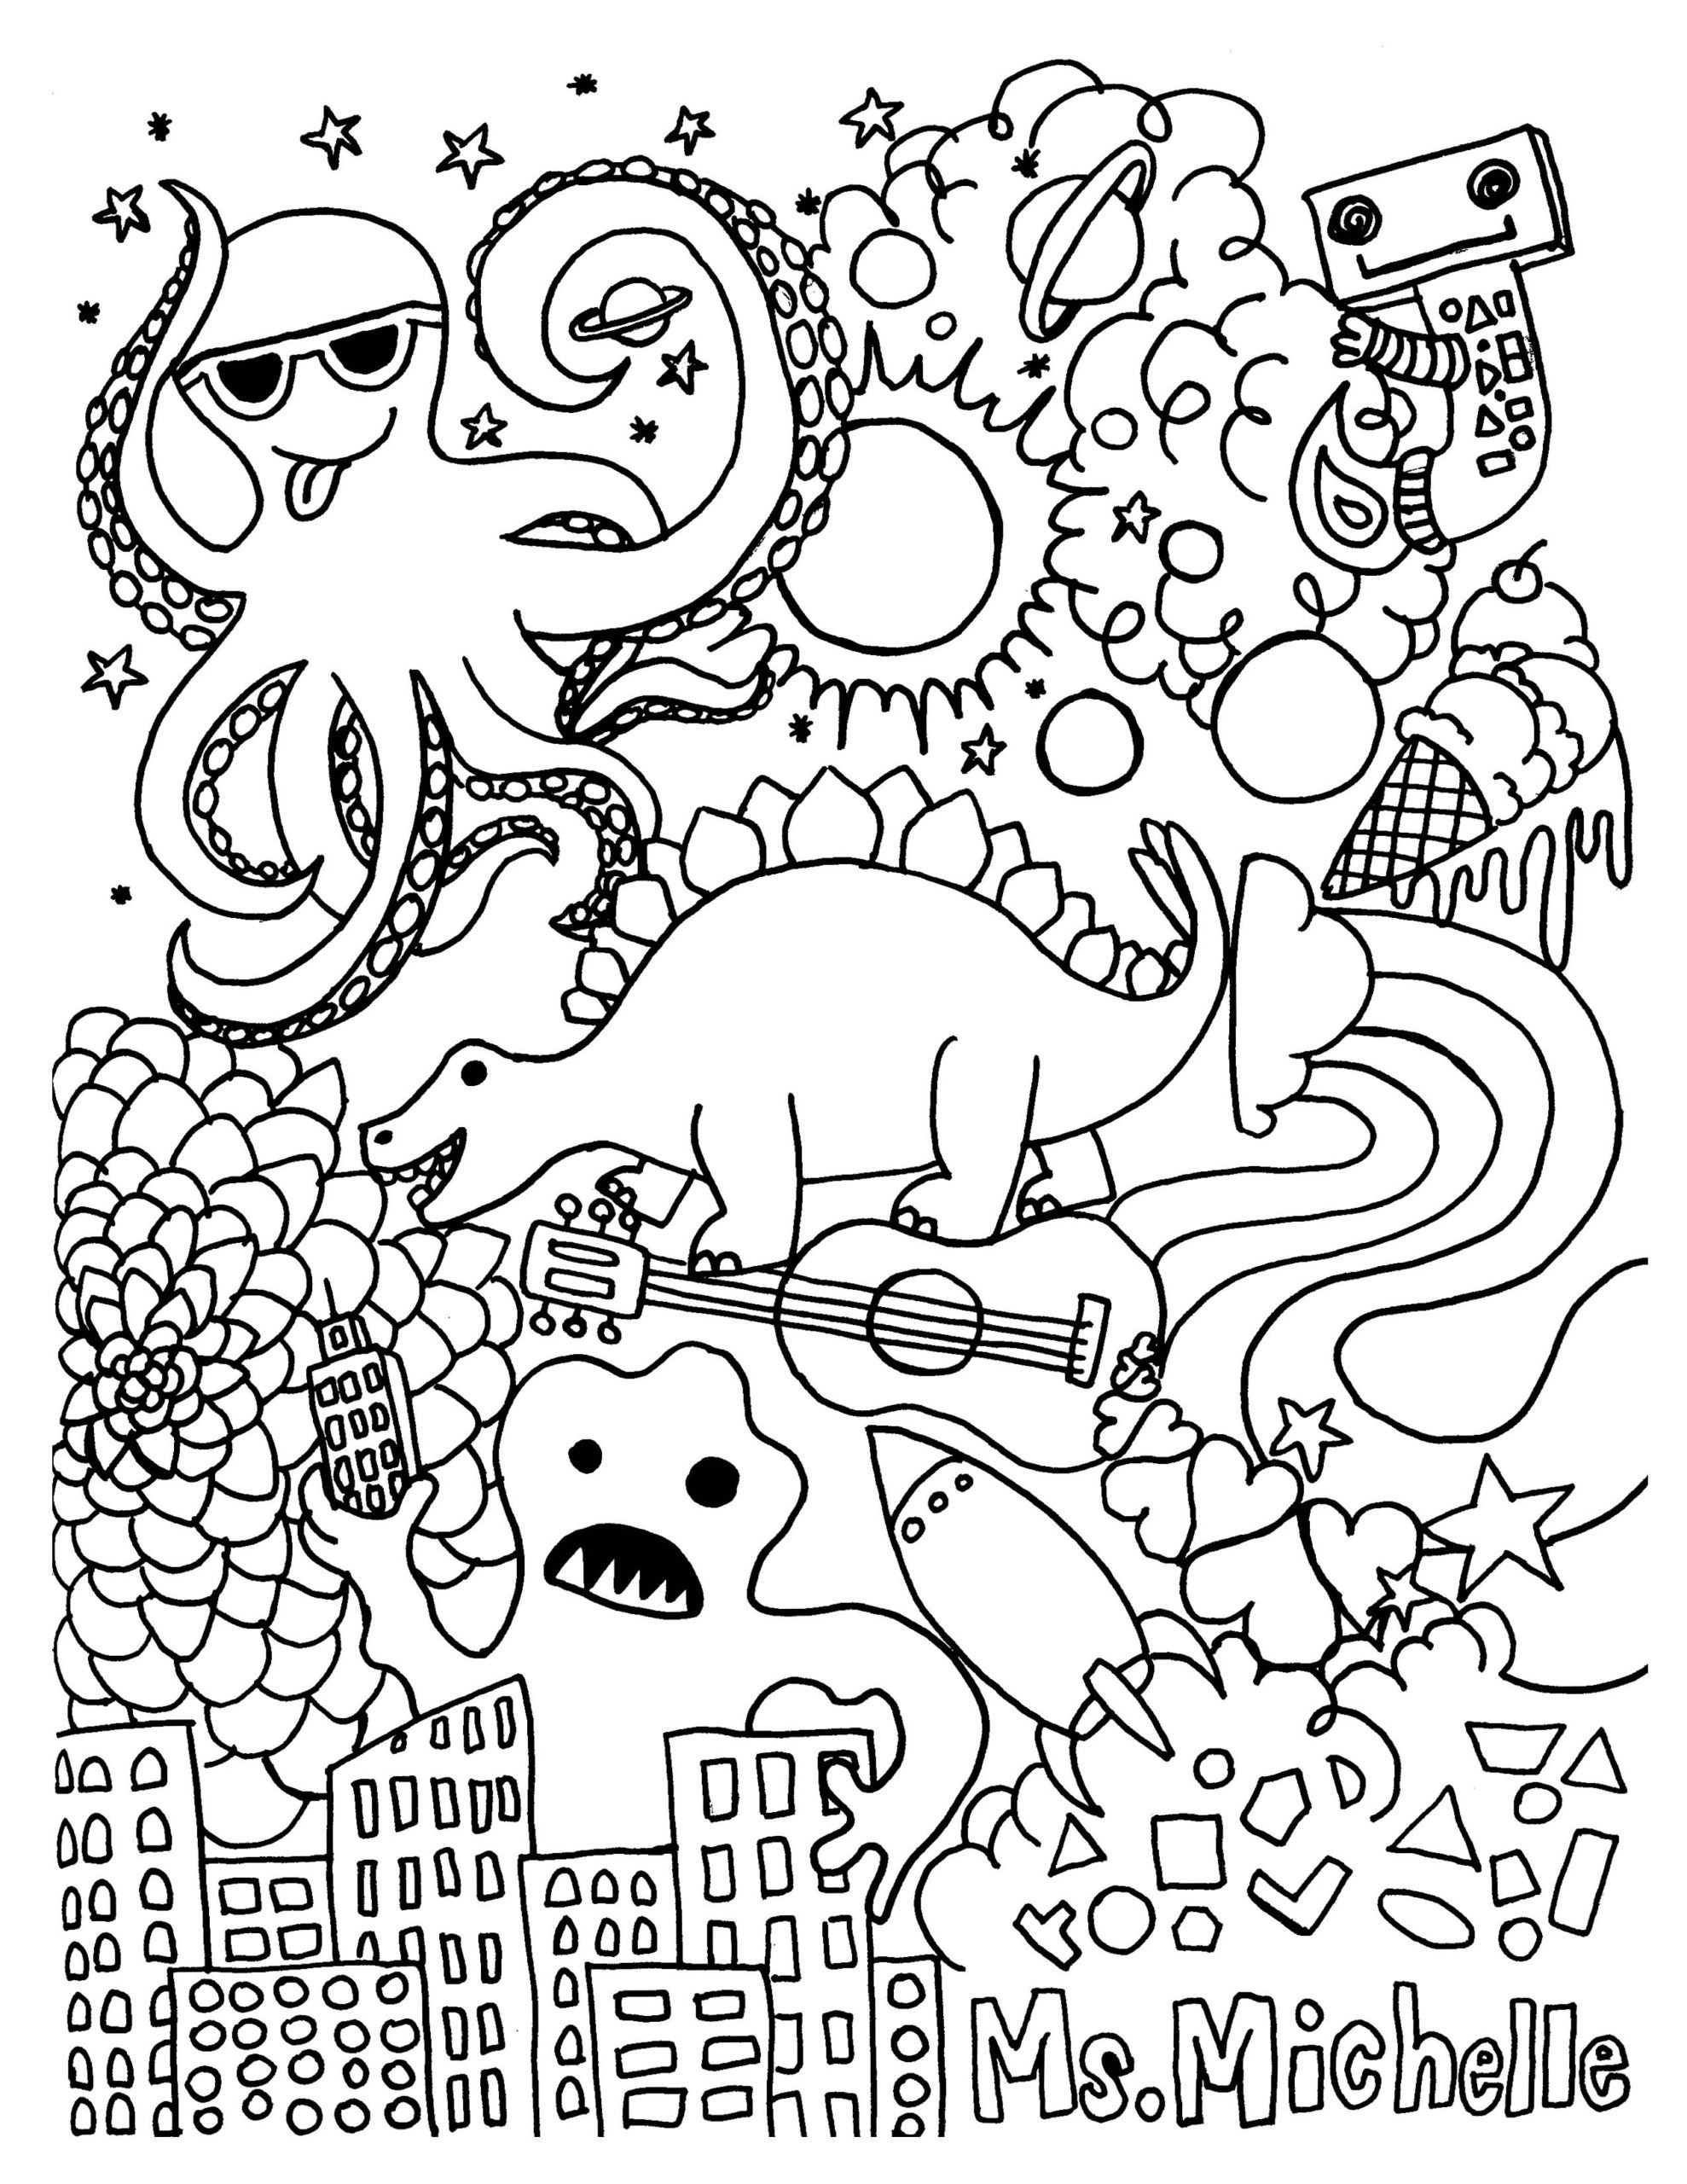 3rd Grade Art Worksheets Coloring Pages Free Printable Activity for Kids Luxury Book